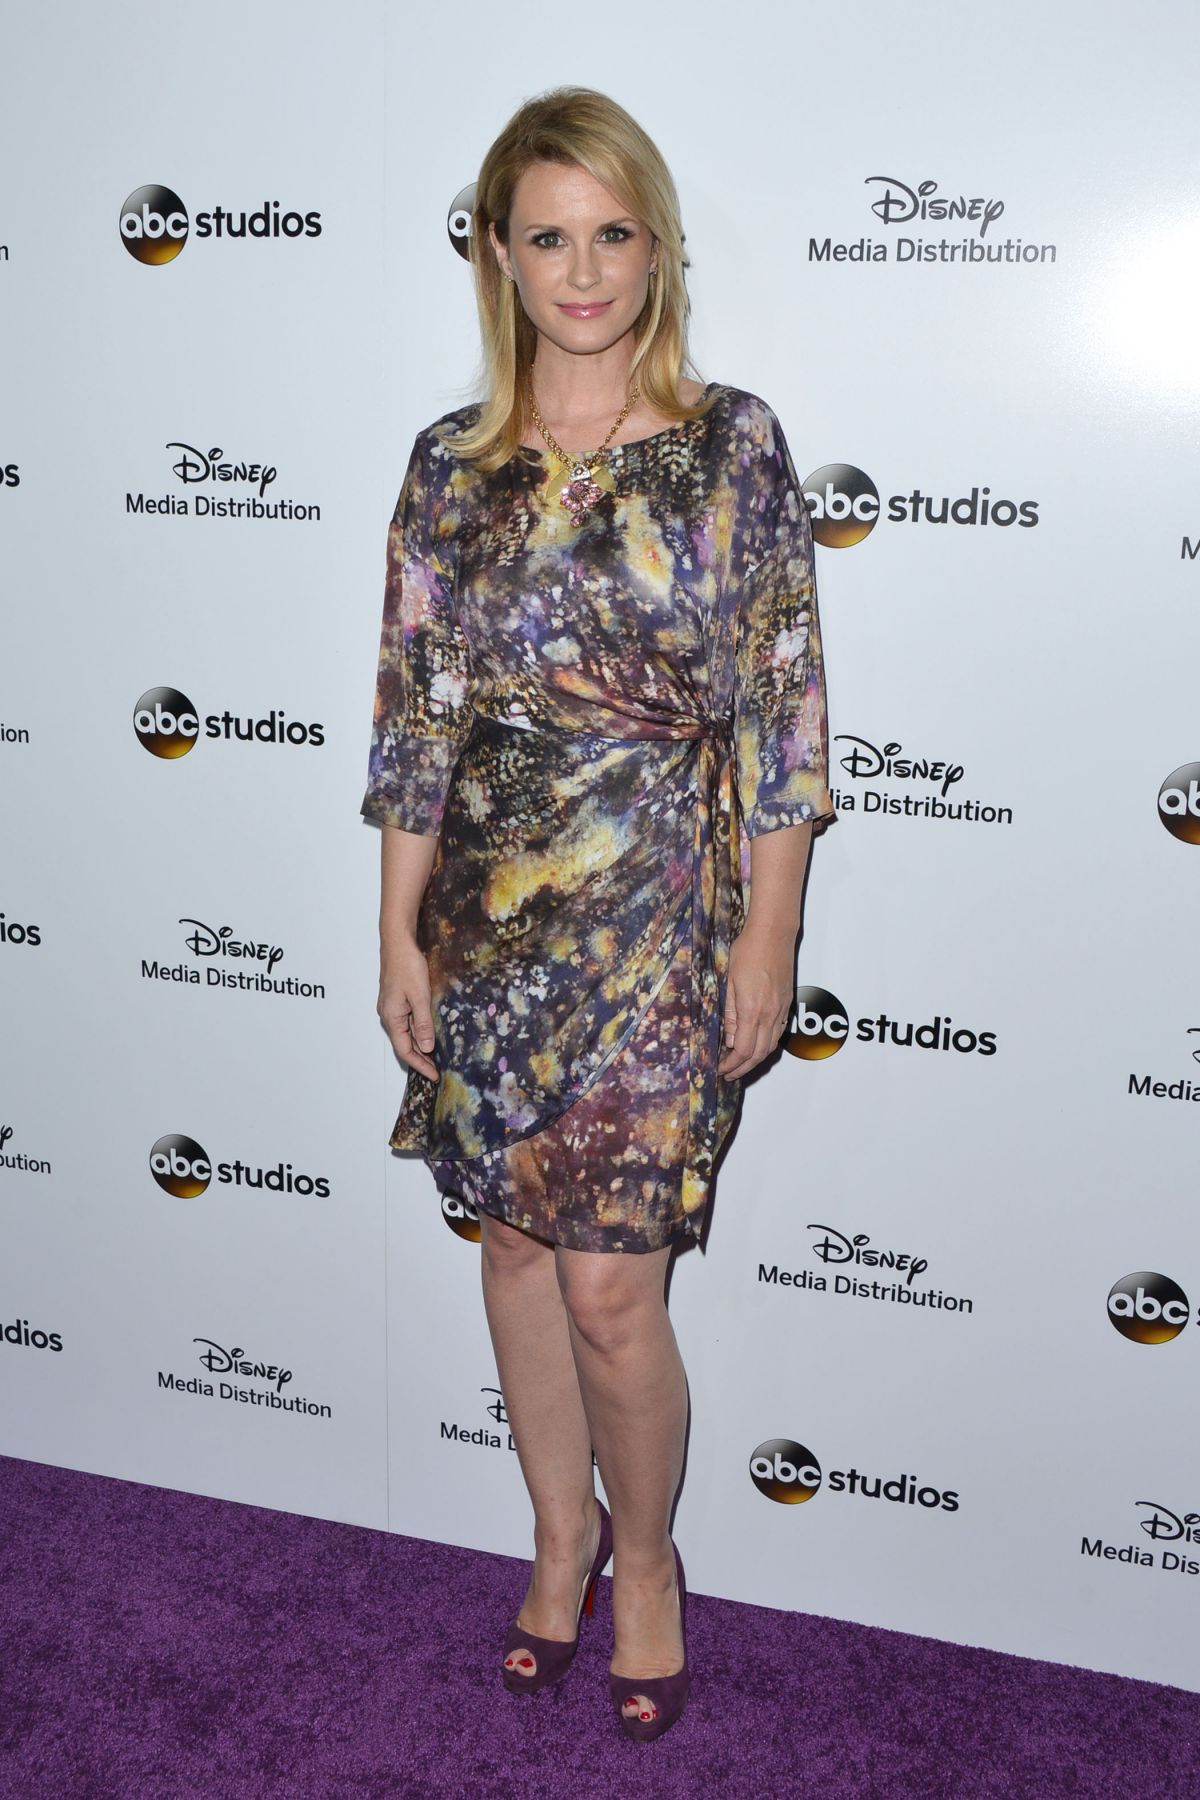 BONNIE SOMERVILLE at Disney Media Distribution 2015 International Upfront in Burbank